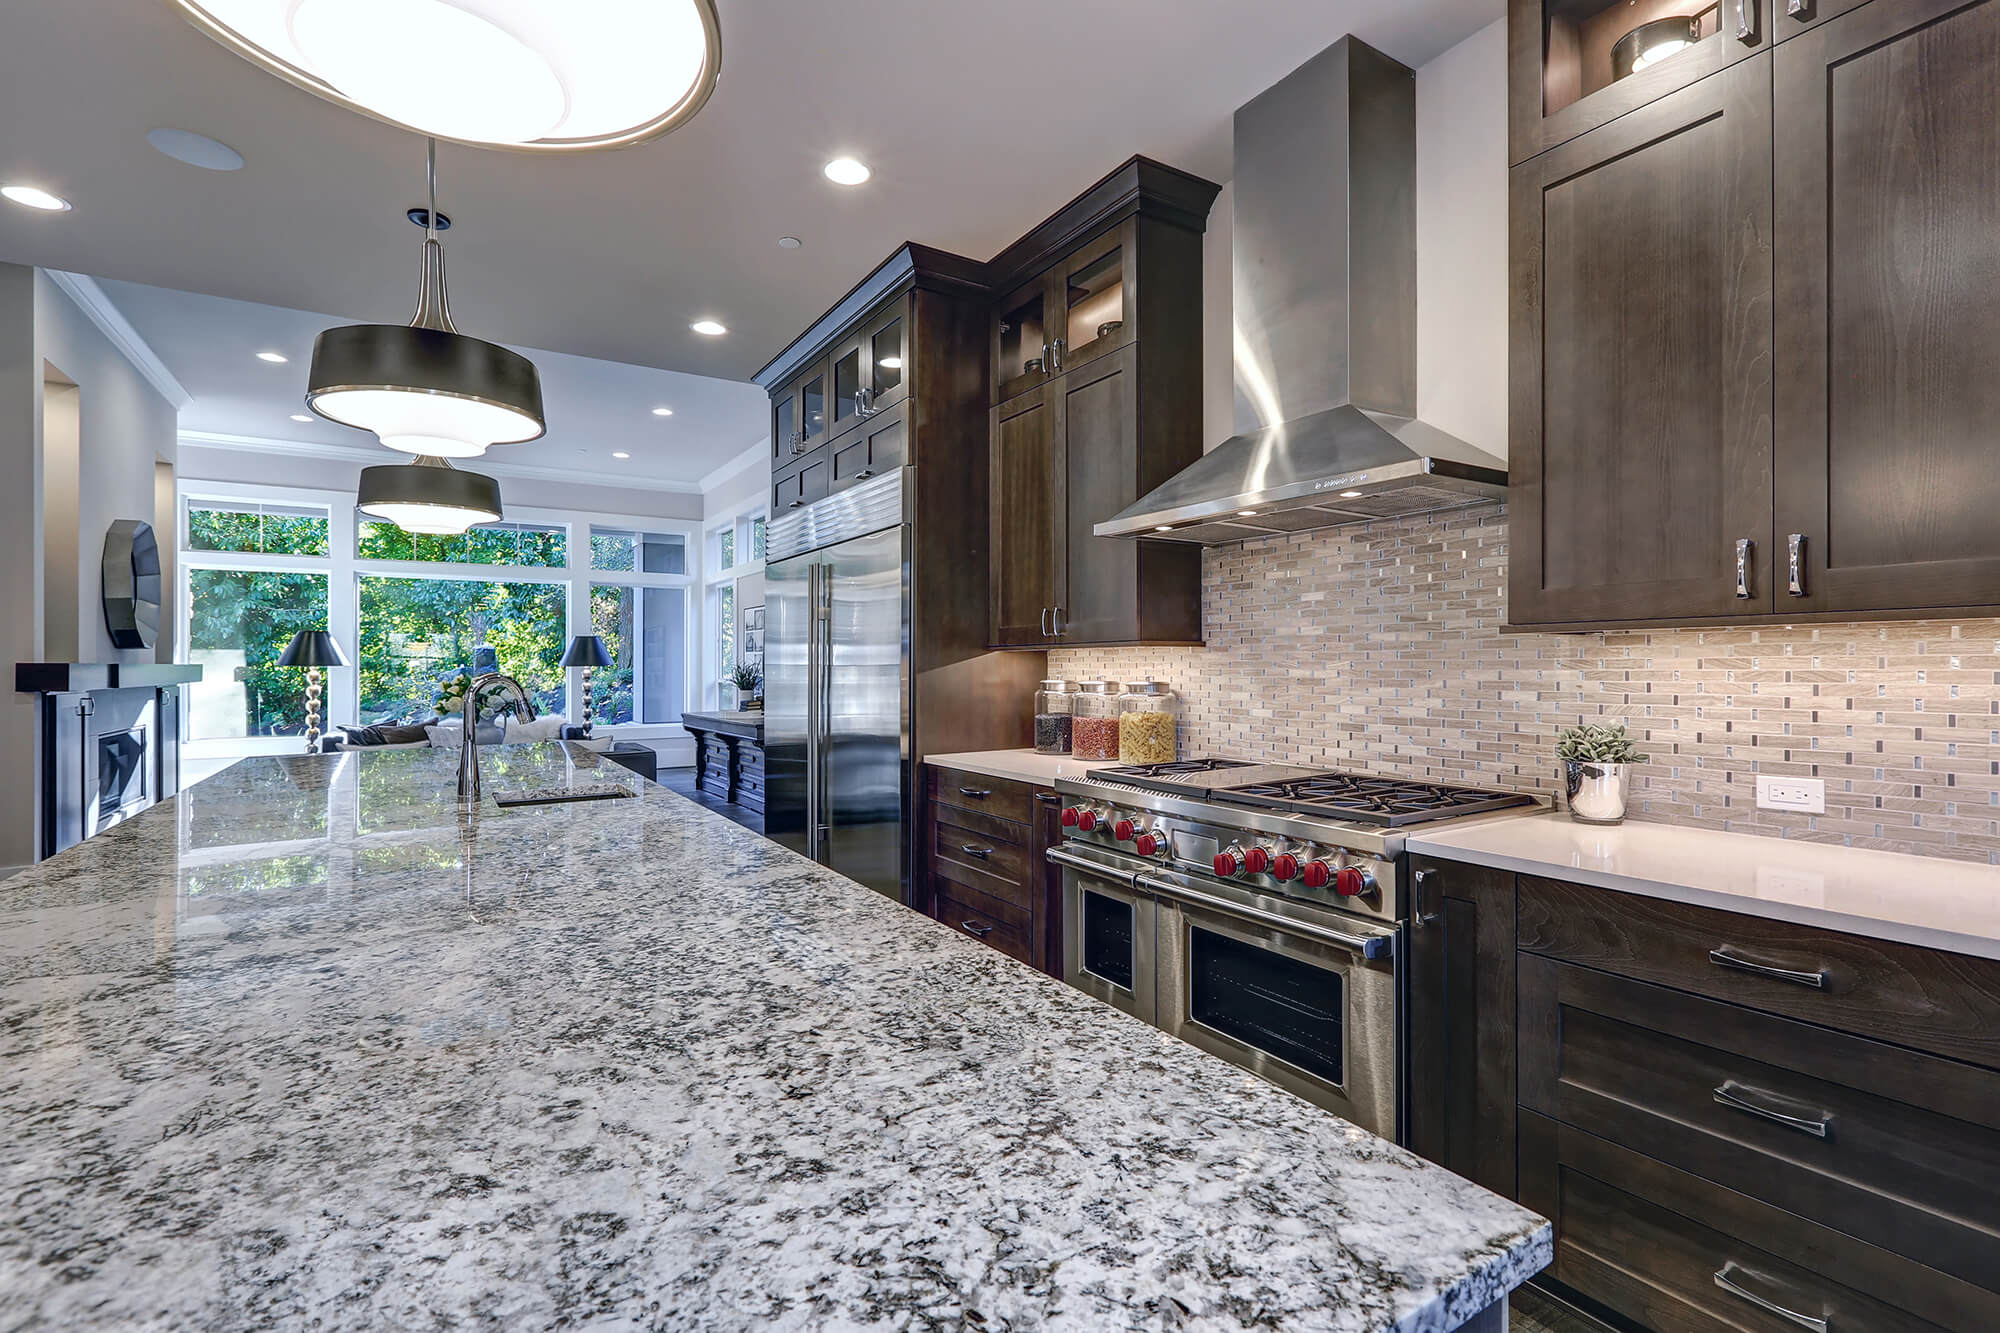 Stylish Countertops for Your Kitchen - Cabinet Depot